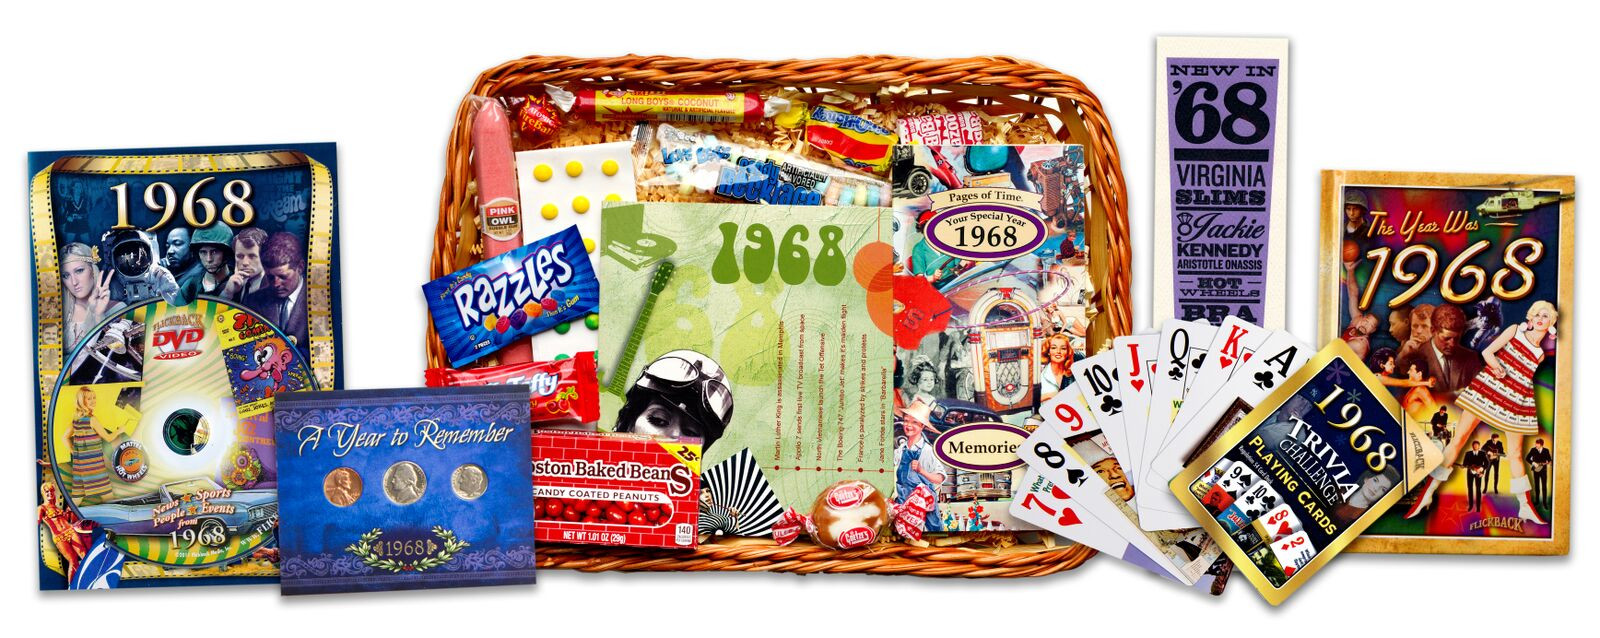 Best ideas about 50th Birthday Gifts For Men . Save or Pin 50th Birthday Gifts for Men Born in 1968 Now.